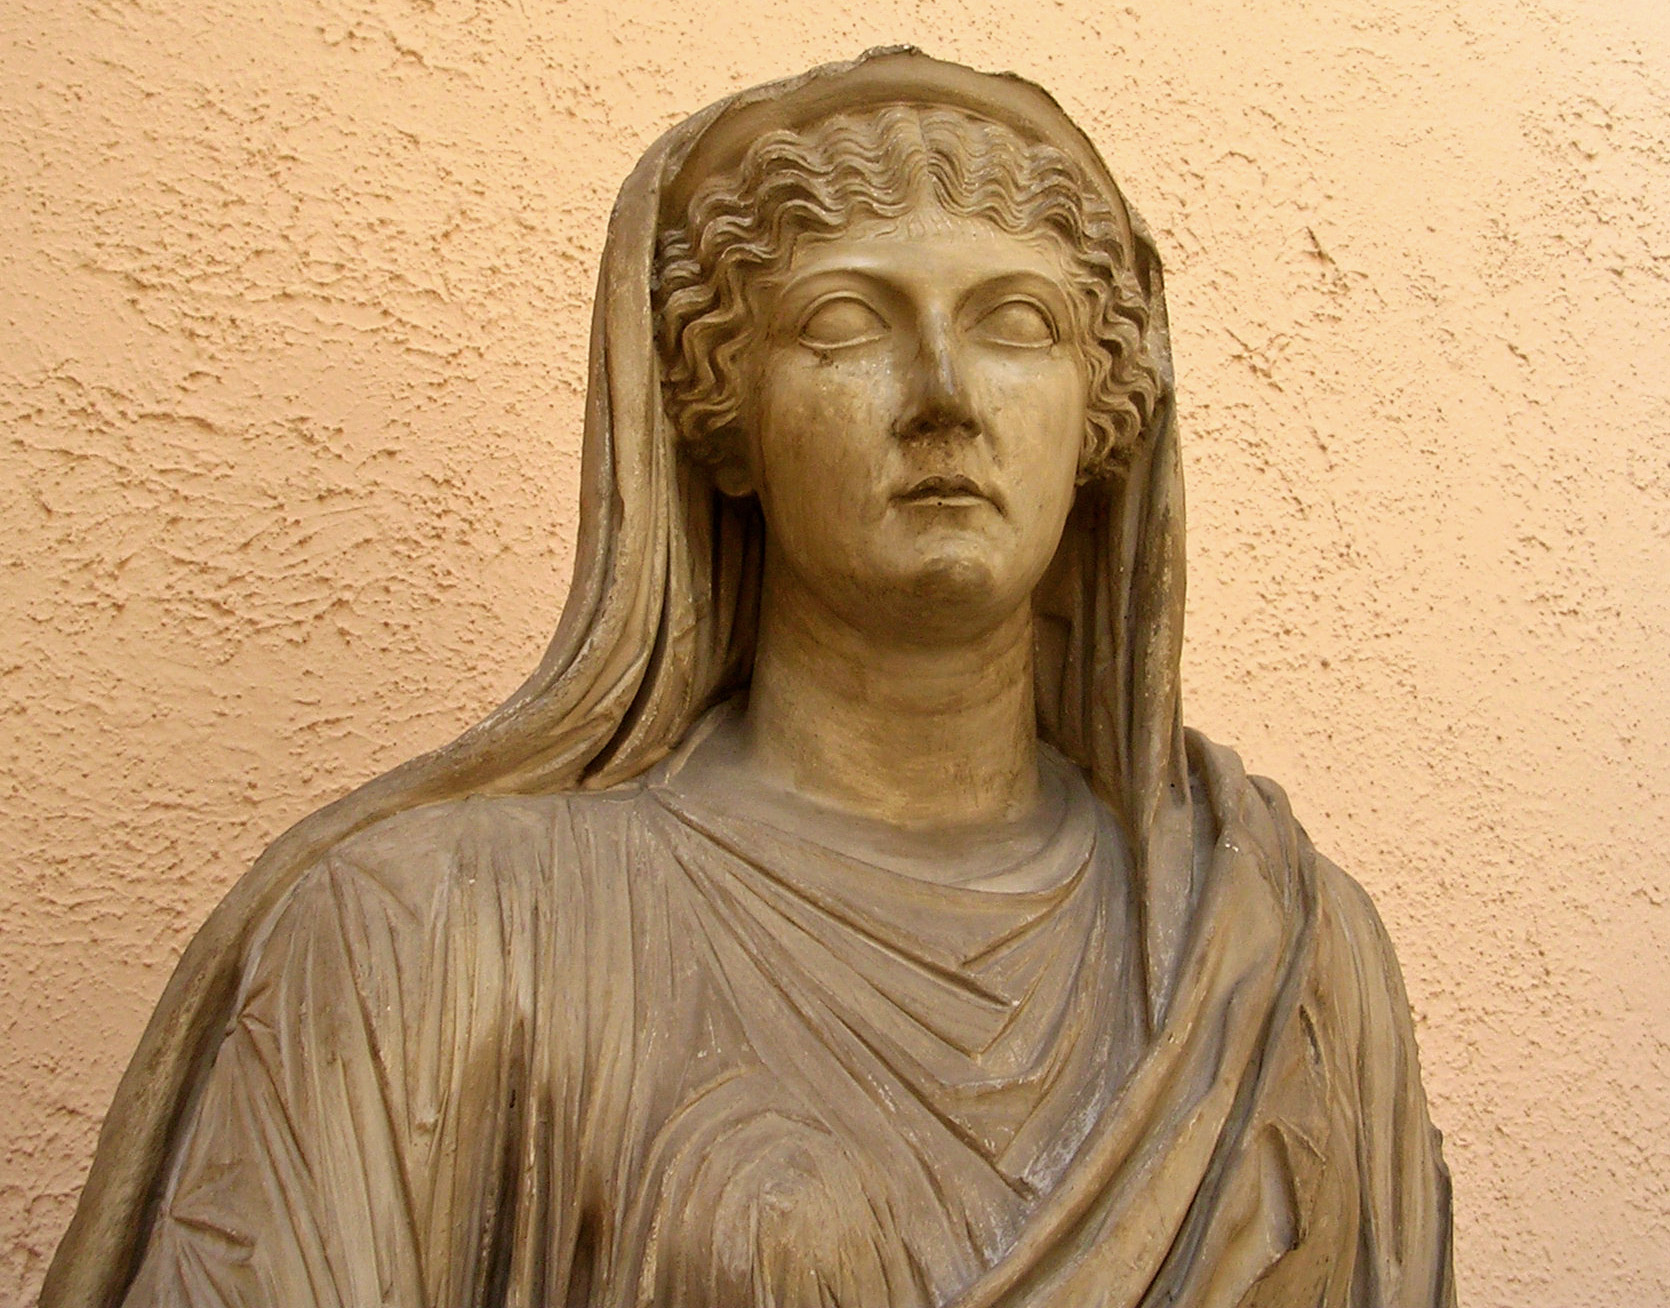 Livia (or Drusilla?). Inv. No. MCR 291. Plaster cast. Original: Pentelic marble, reign of Caligula (37—41 CE). Rome, Museum of Roman Civilization